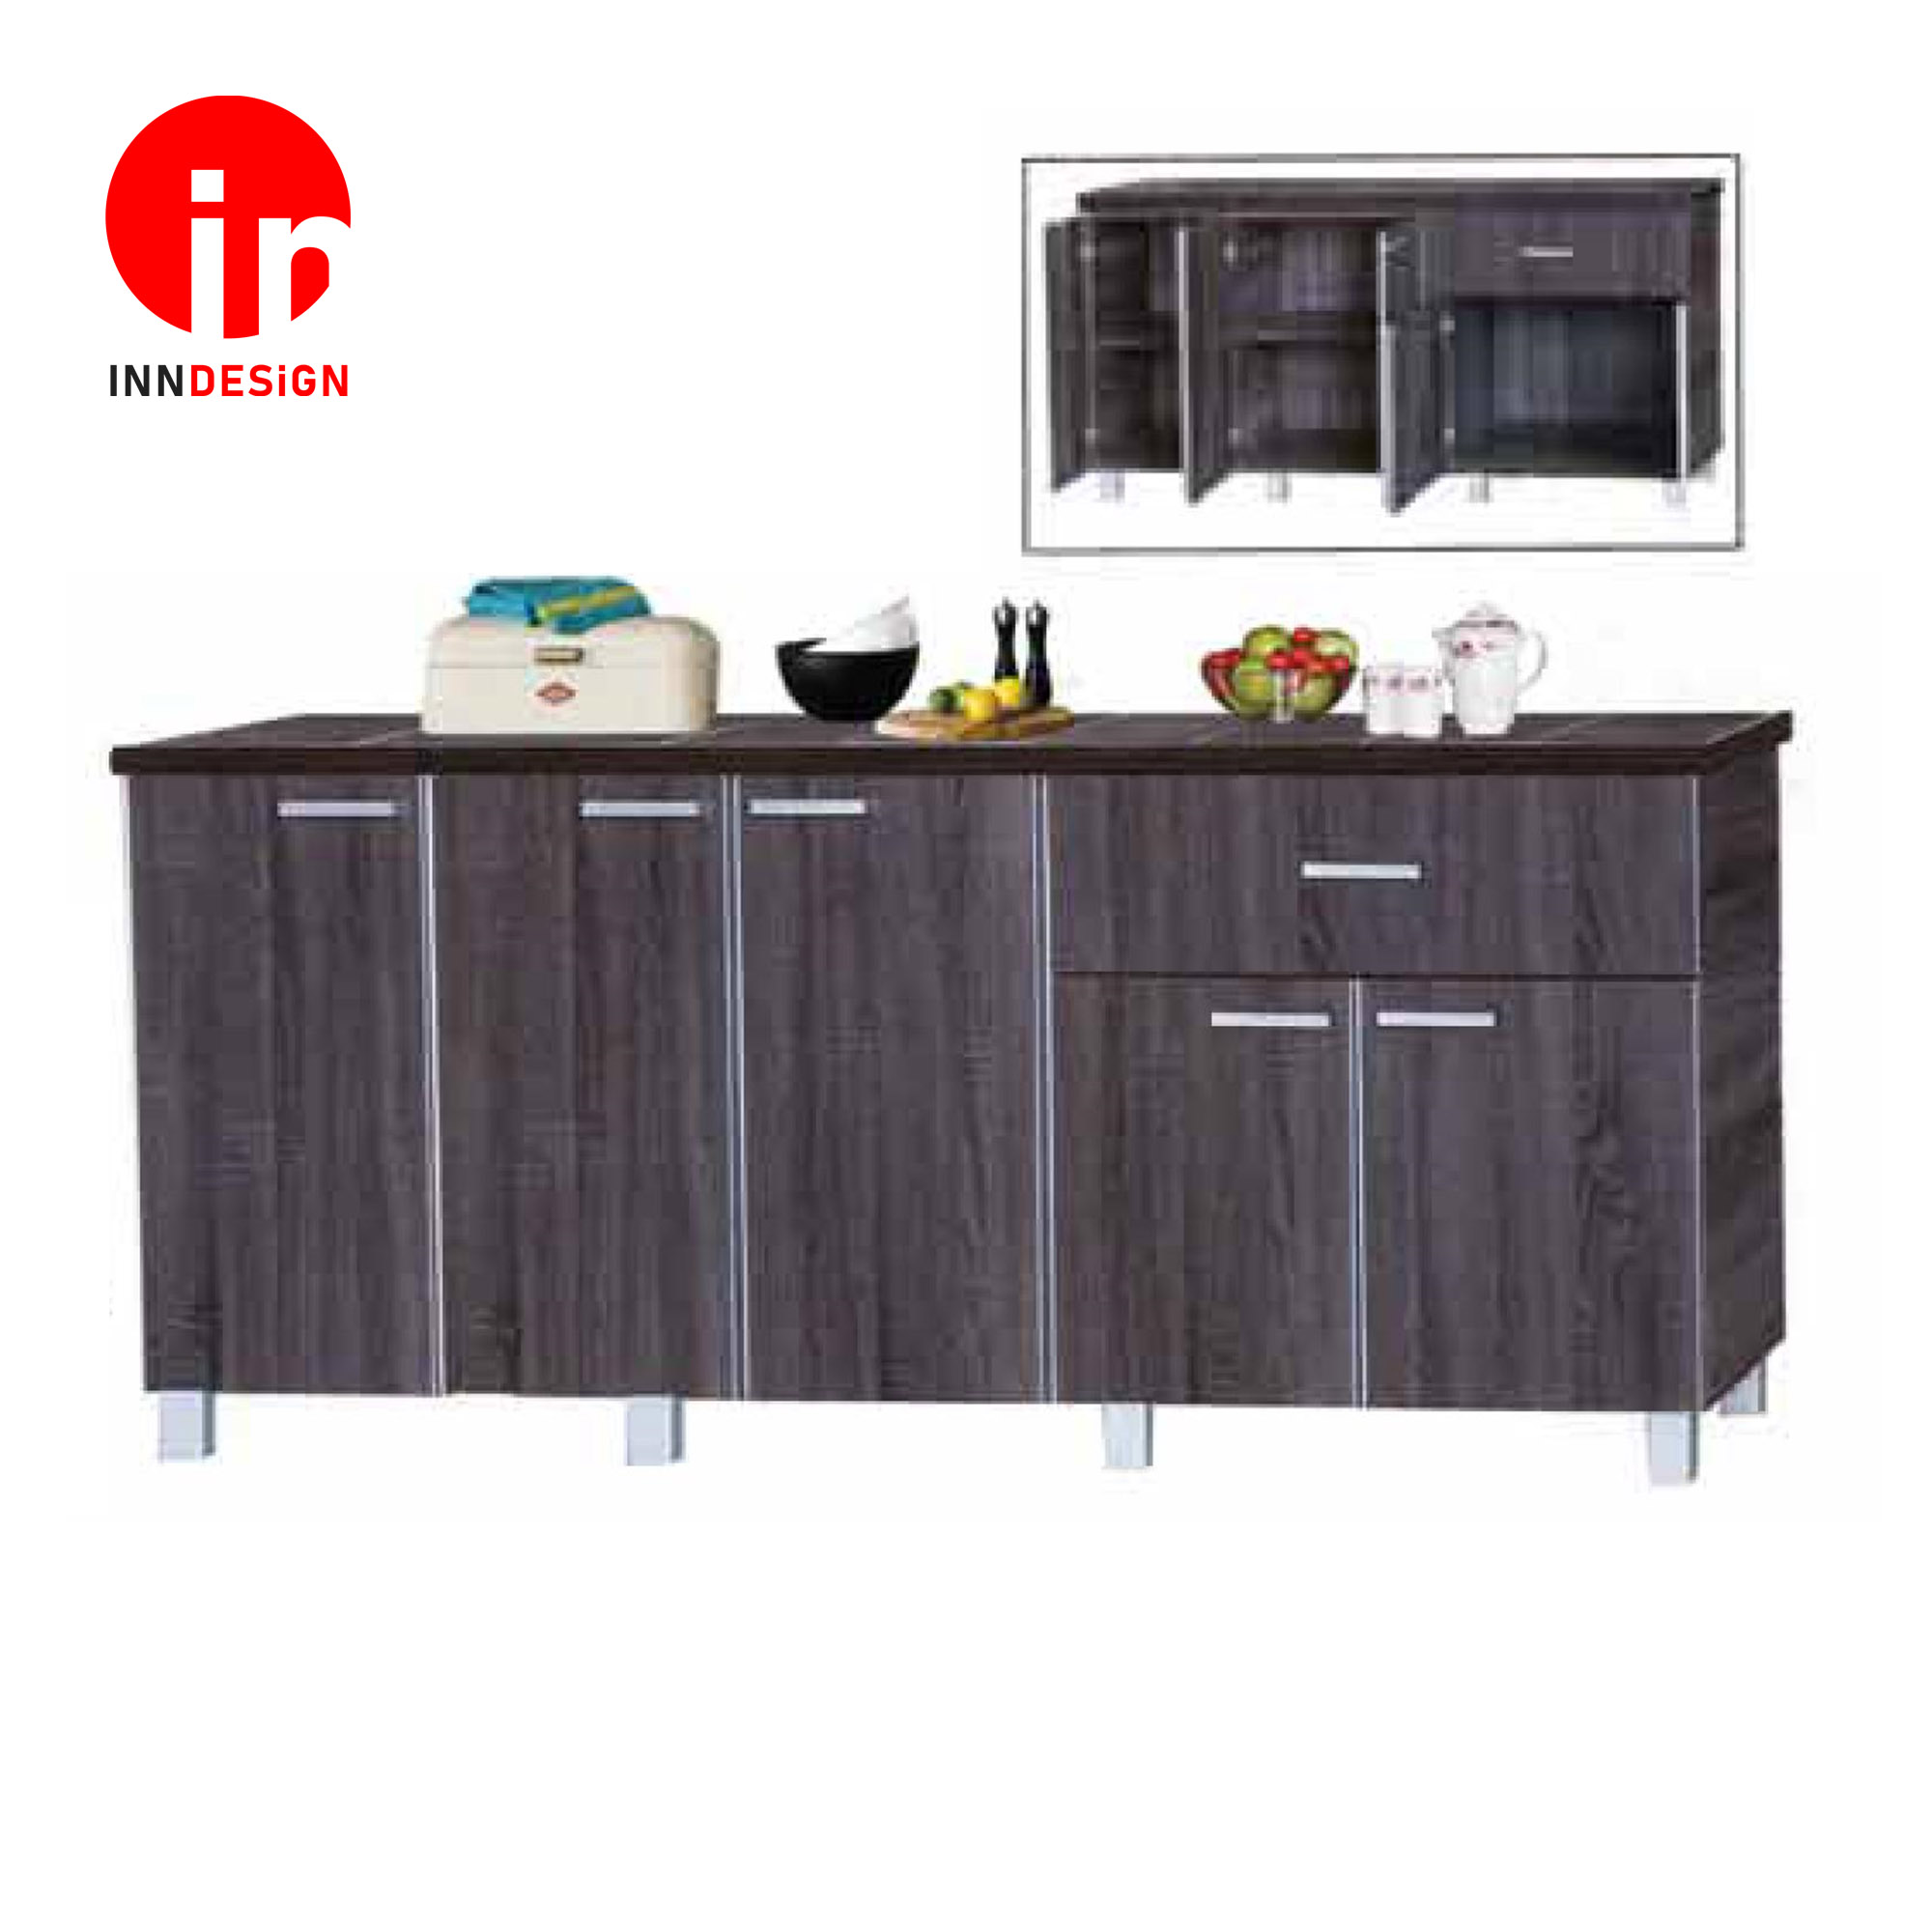 Cassiva 5 Doors With Drawer Kitchen Cabinet (D20 ) (Ceramic Tiles Top) (Free Delivery and Installation) (Walnut)